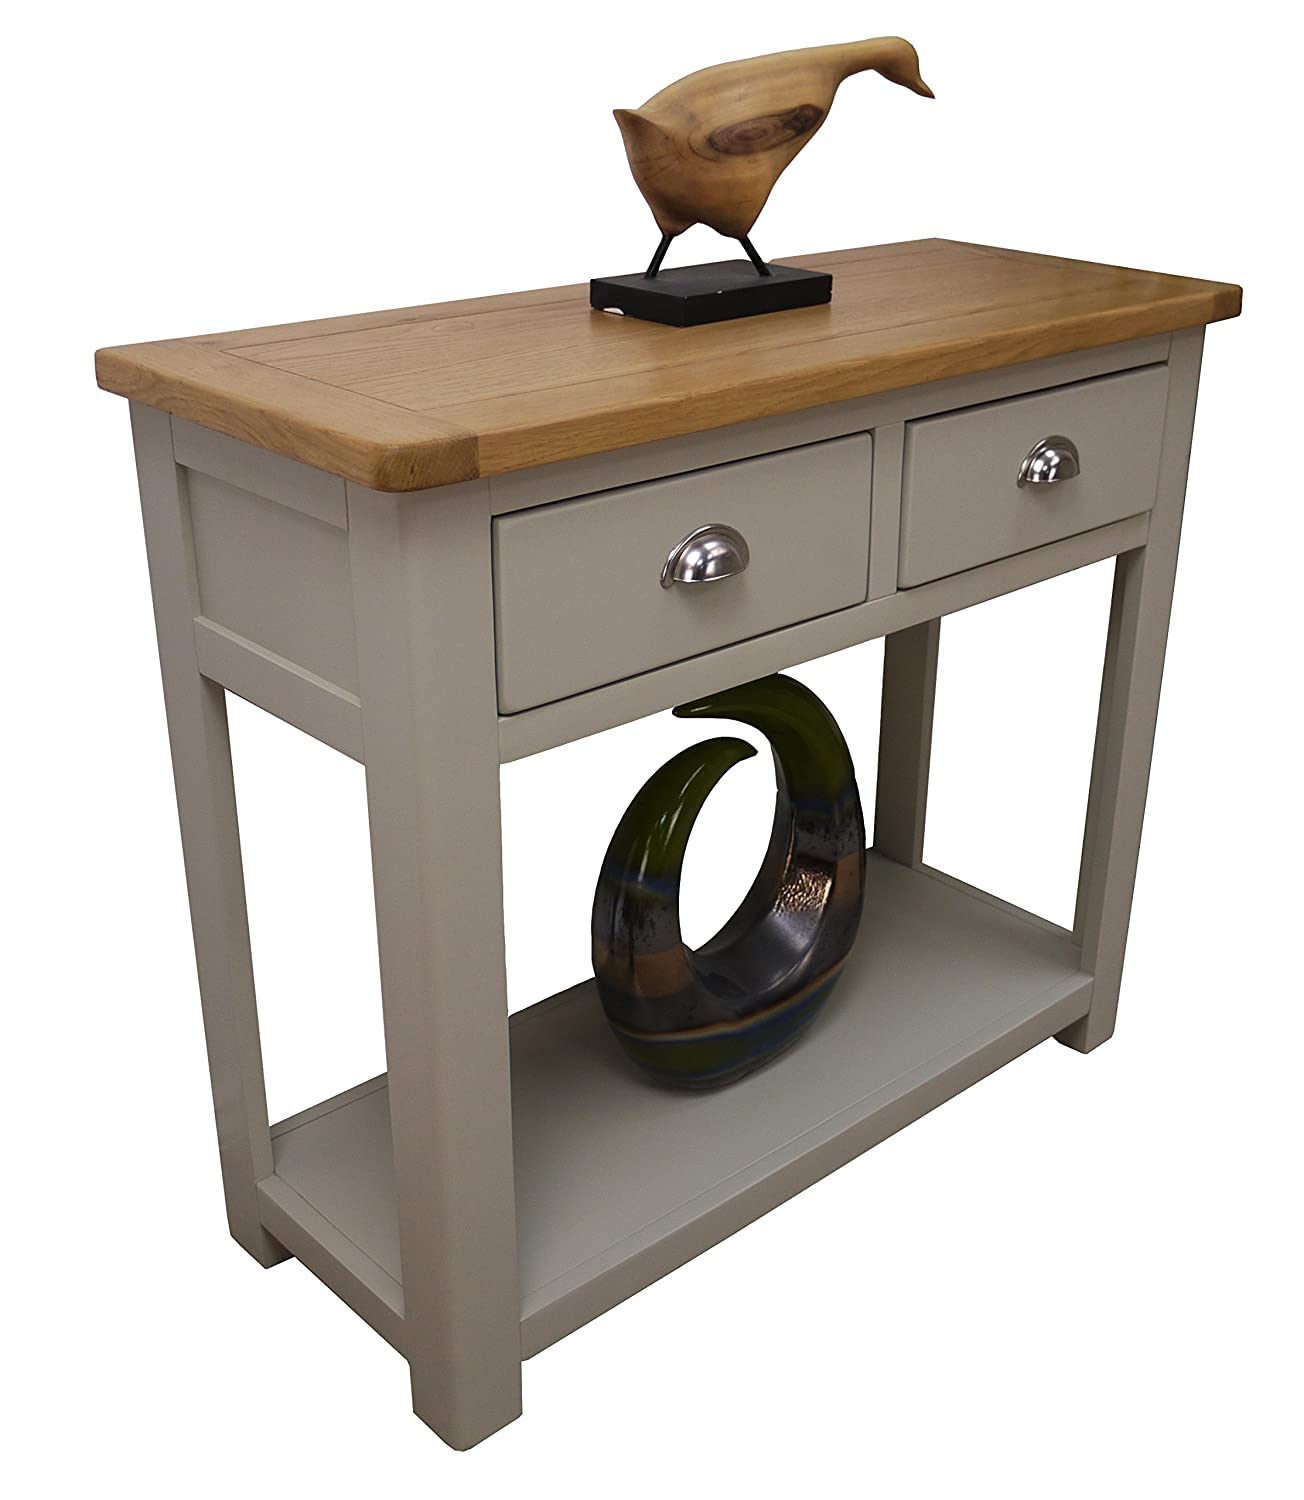 BG kitchen console table Aspen Painted Oak Sage Grey 2 Drawer Console Table Hall Unit With Shelf